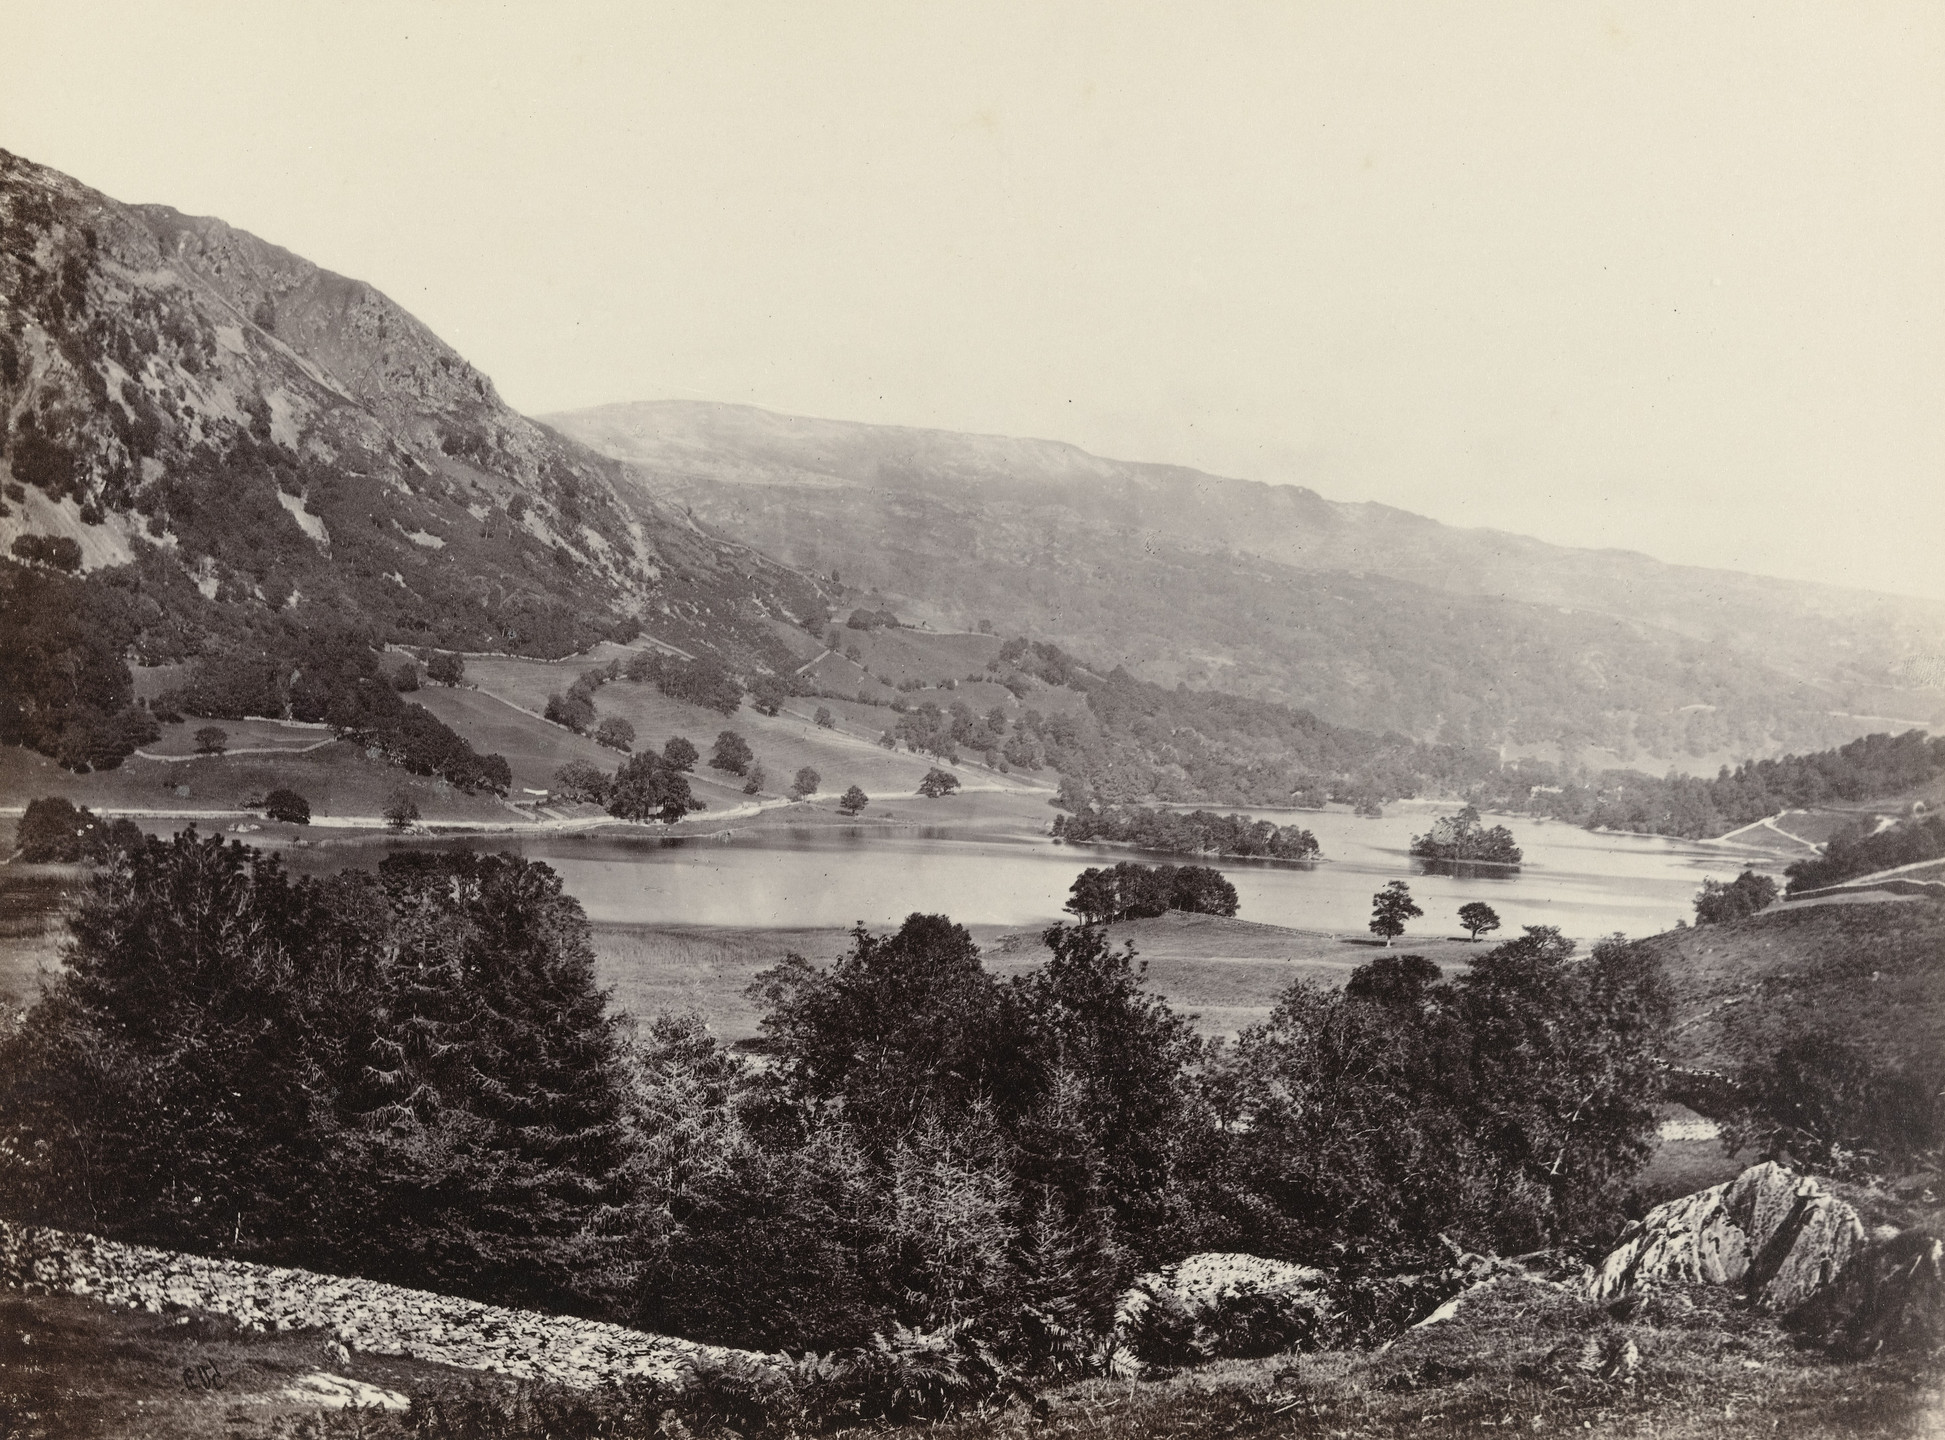 Francis Frith. Rydal Water from Loughrigg Terrace. c. 1860